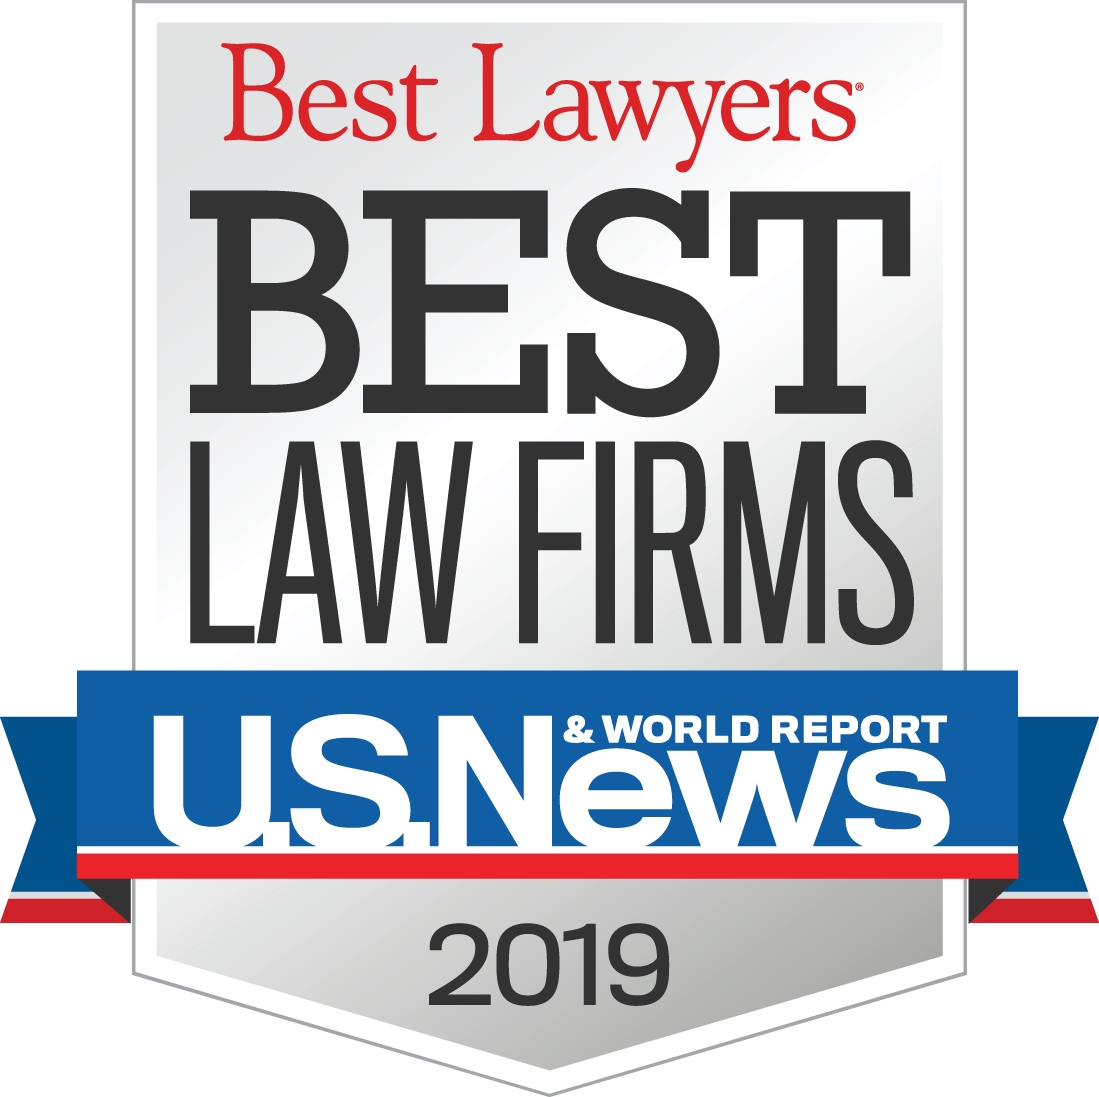 Picture of 2019 U.S. News Best Law Firms logo